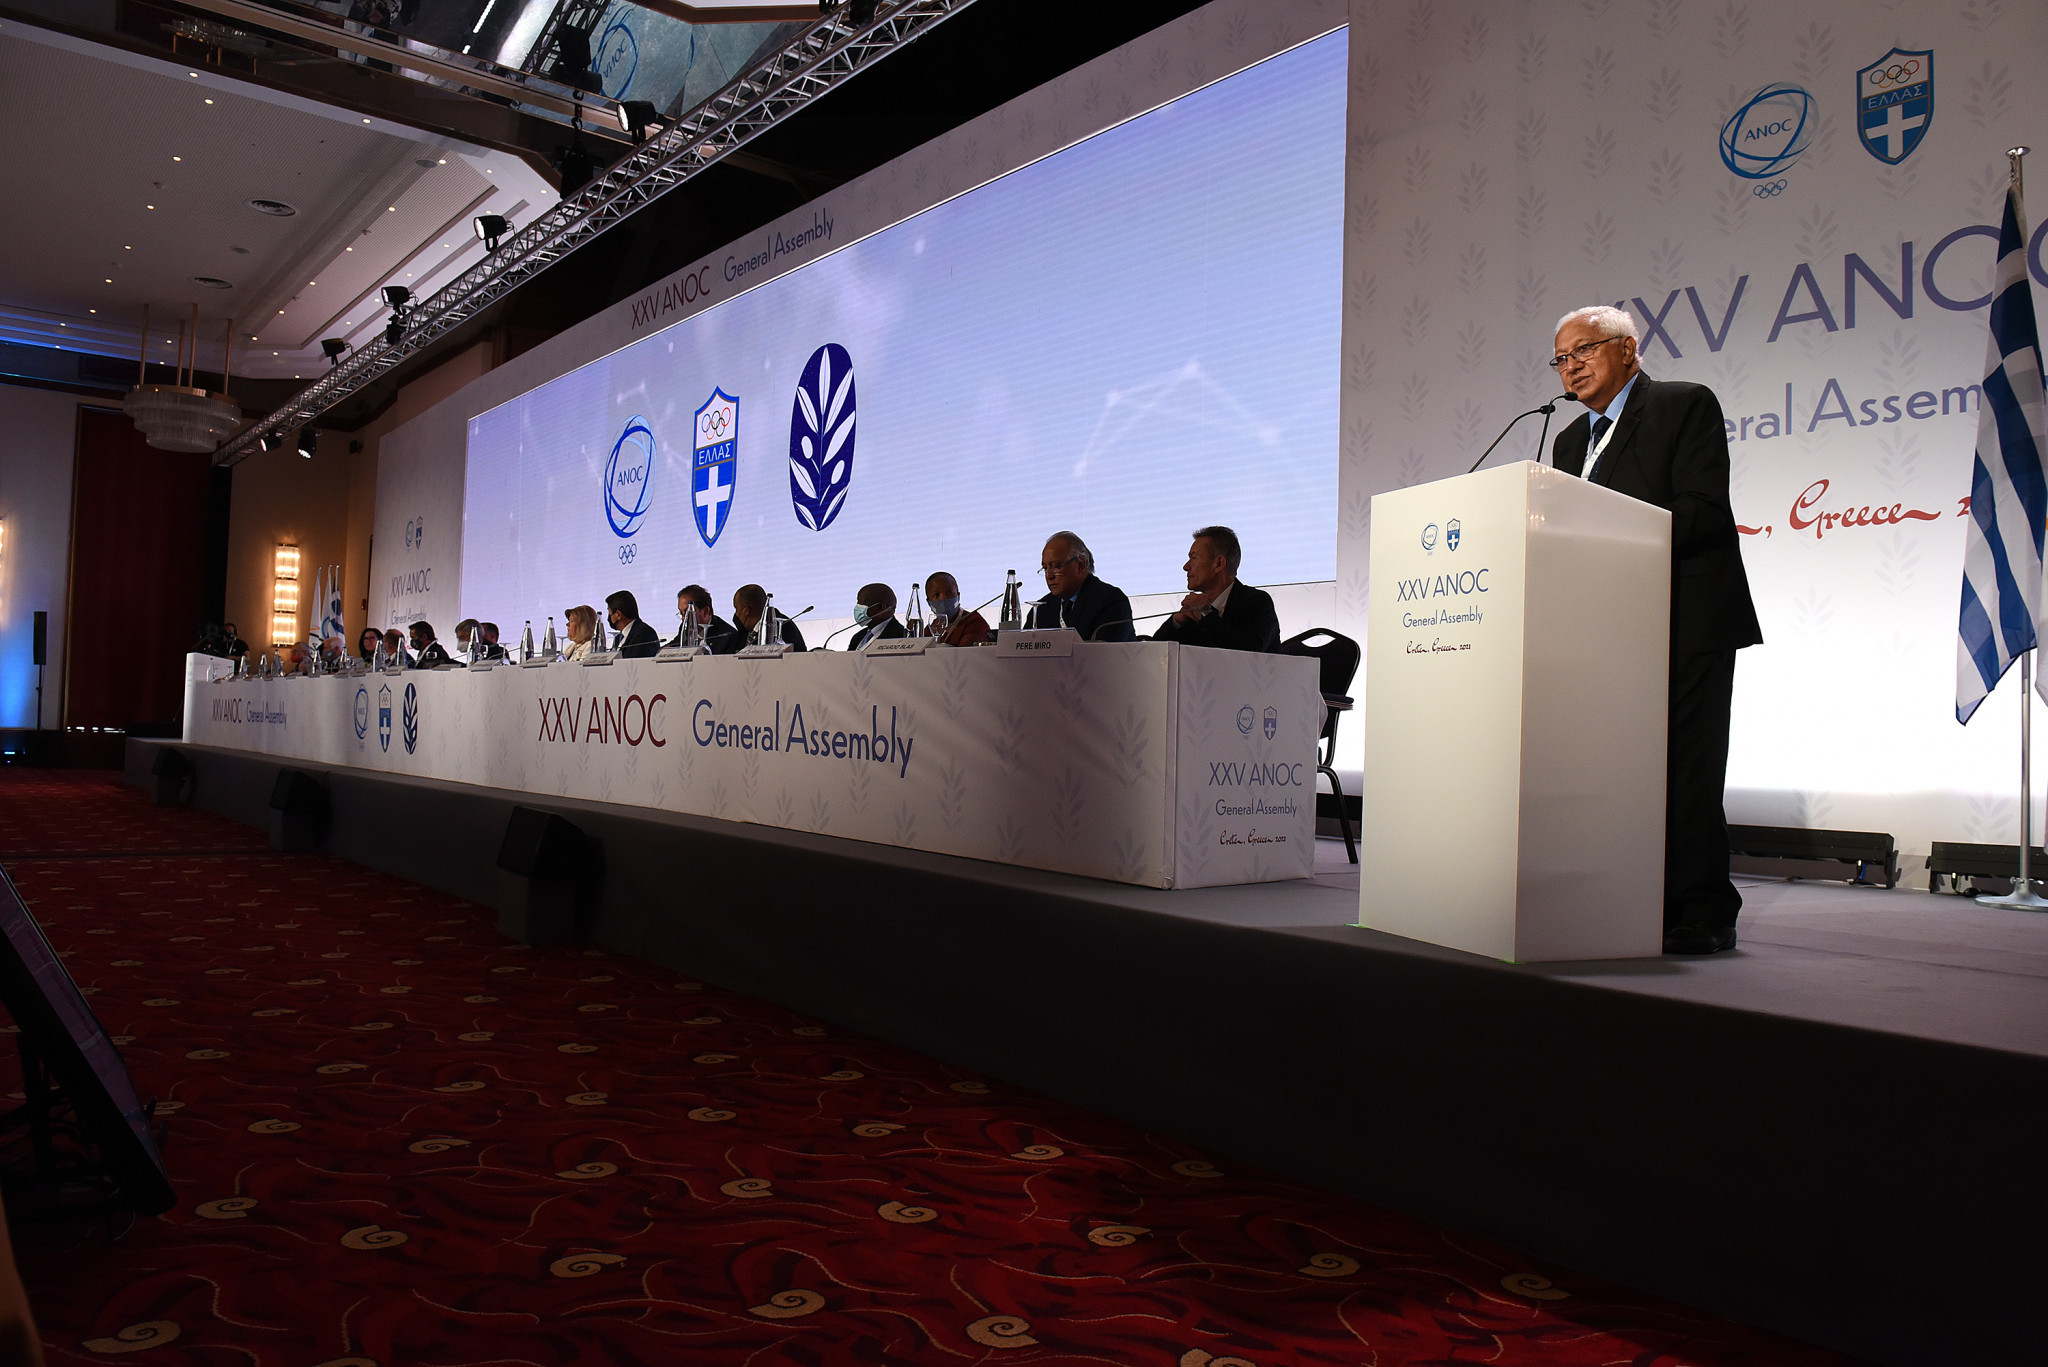 The ANOC General Assembly opened in Crete today ©ANOC